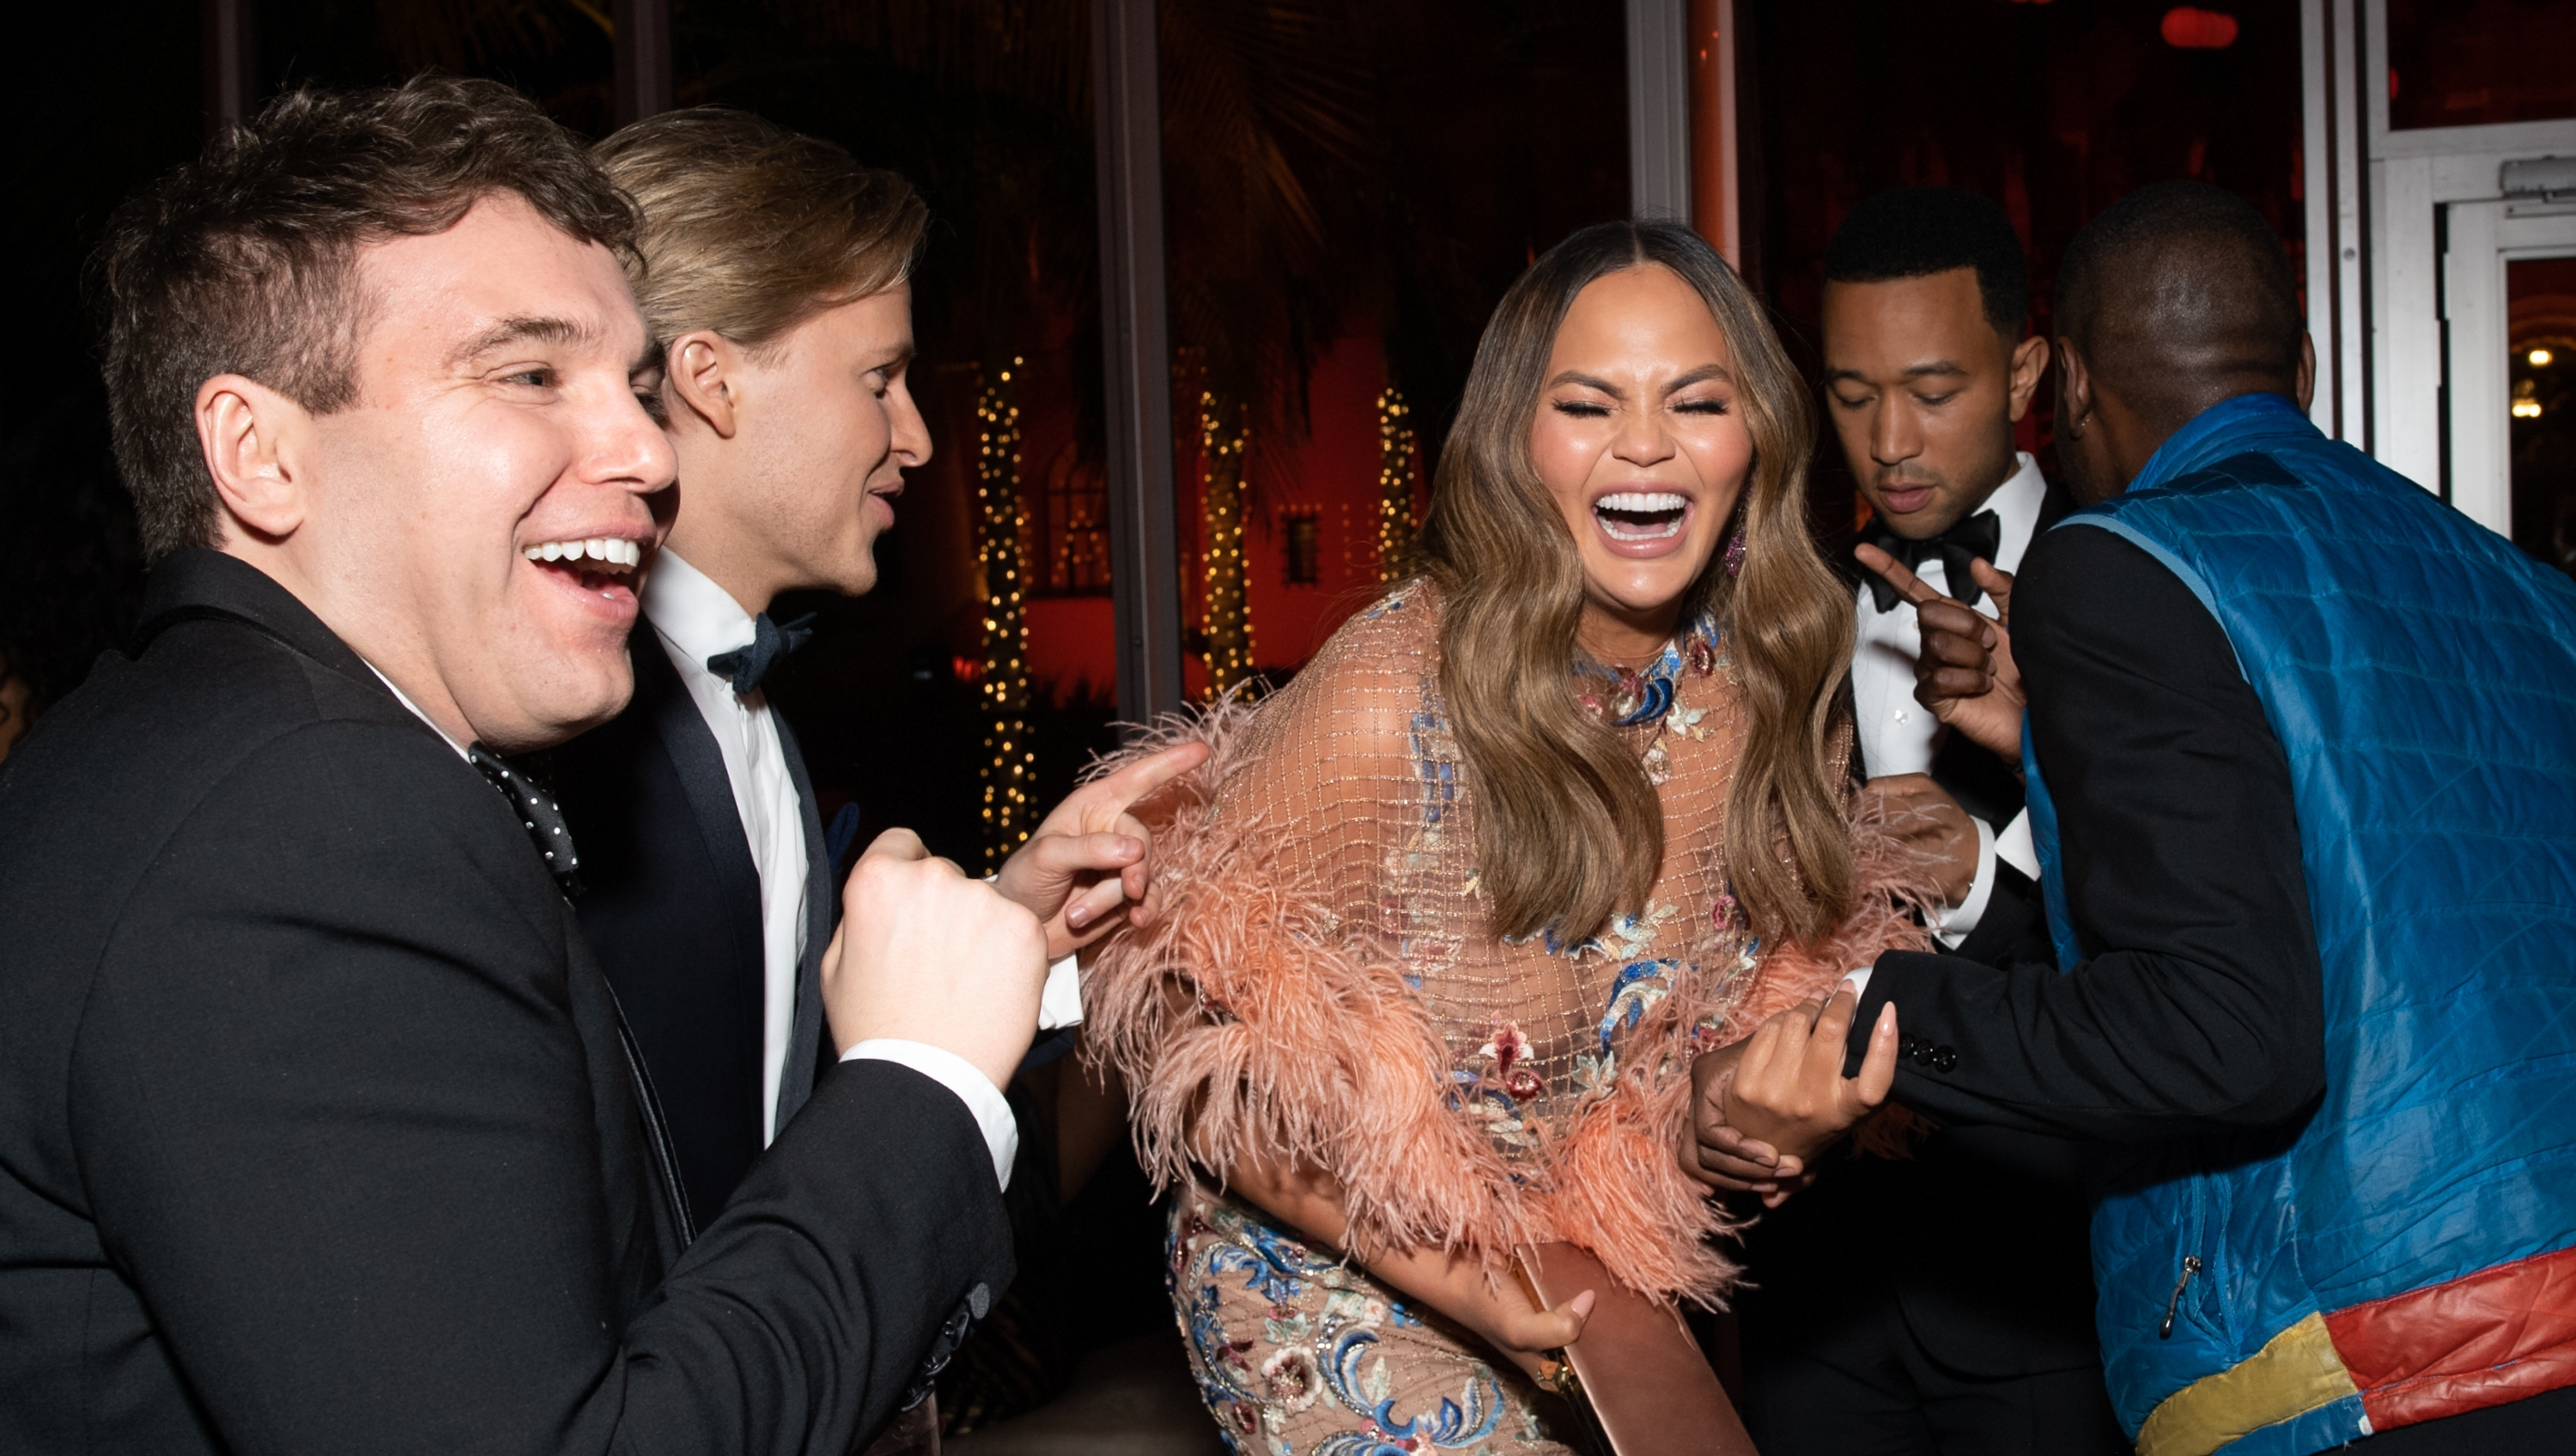 Chrissy Teigen laughing at the oscars wearing a pink dress